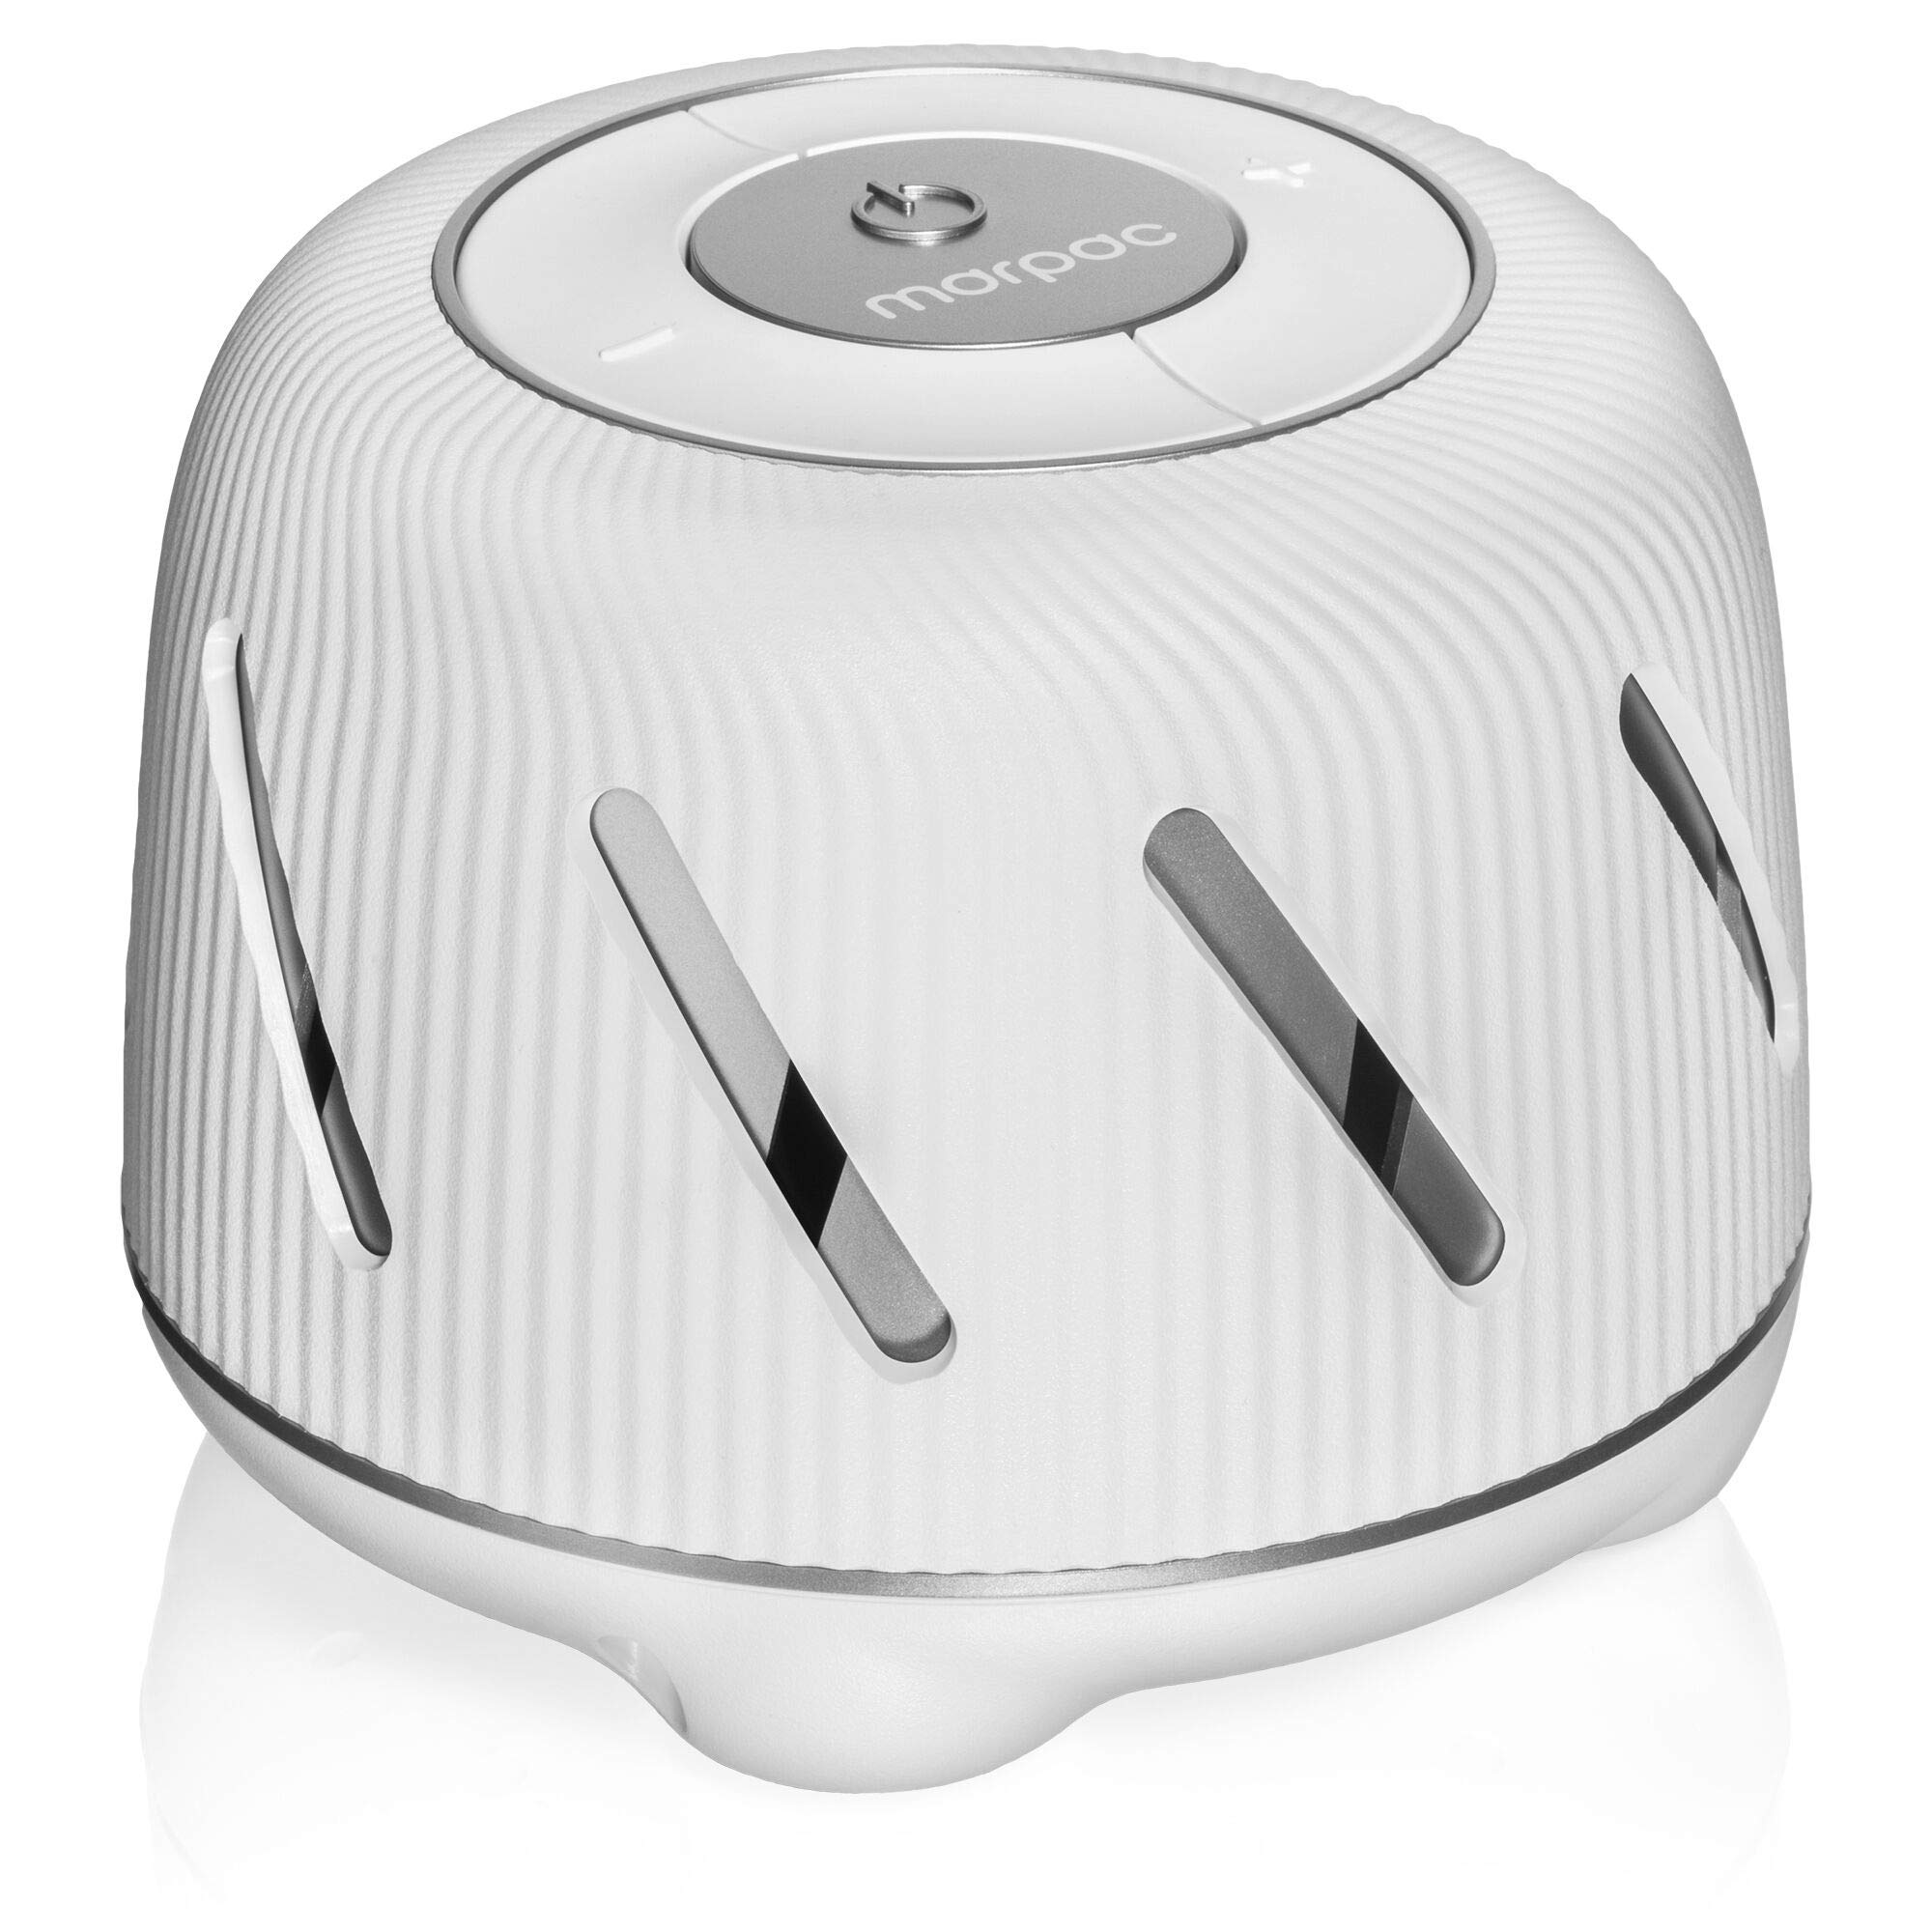 Discontinued - Marpac Connect White Noise Sound Machine, Alexa & App Enabled